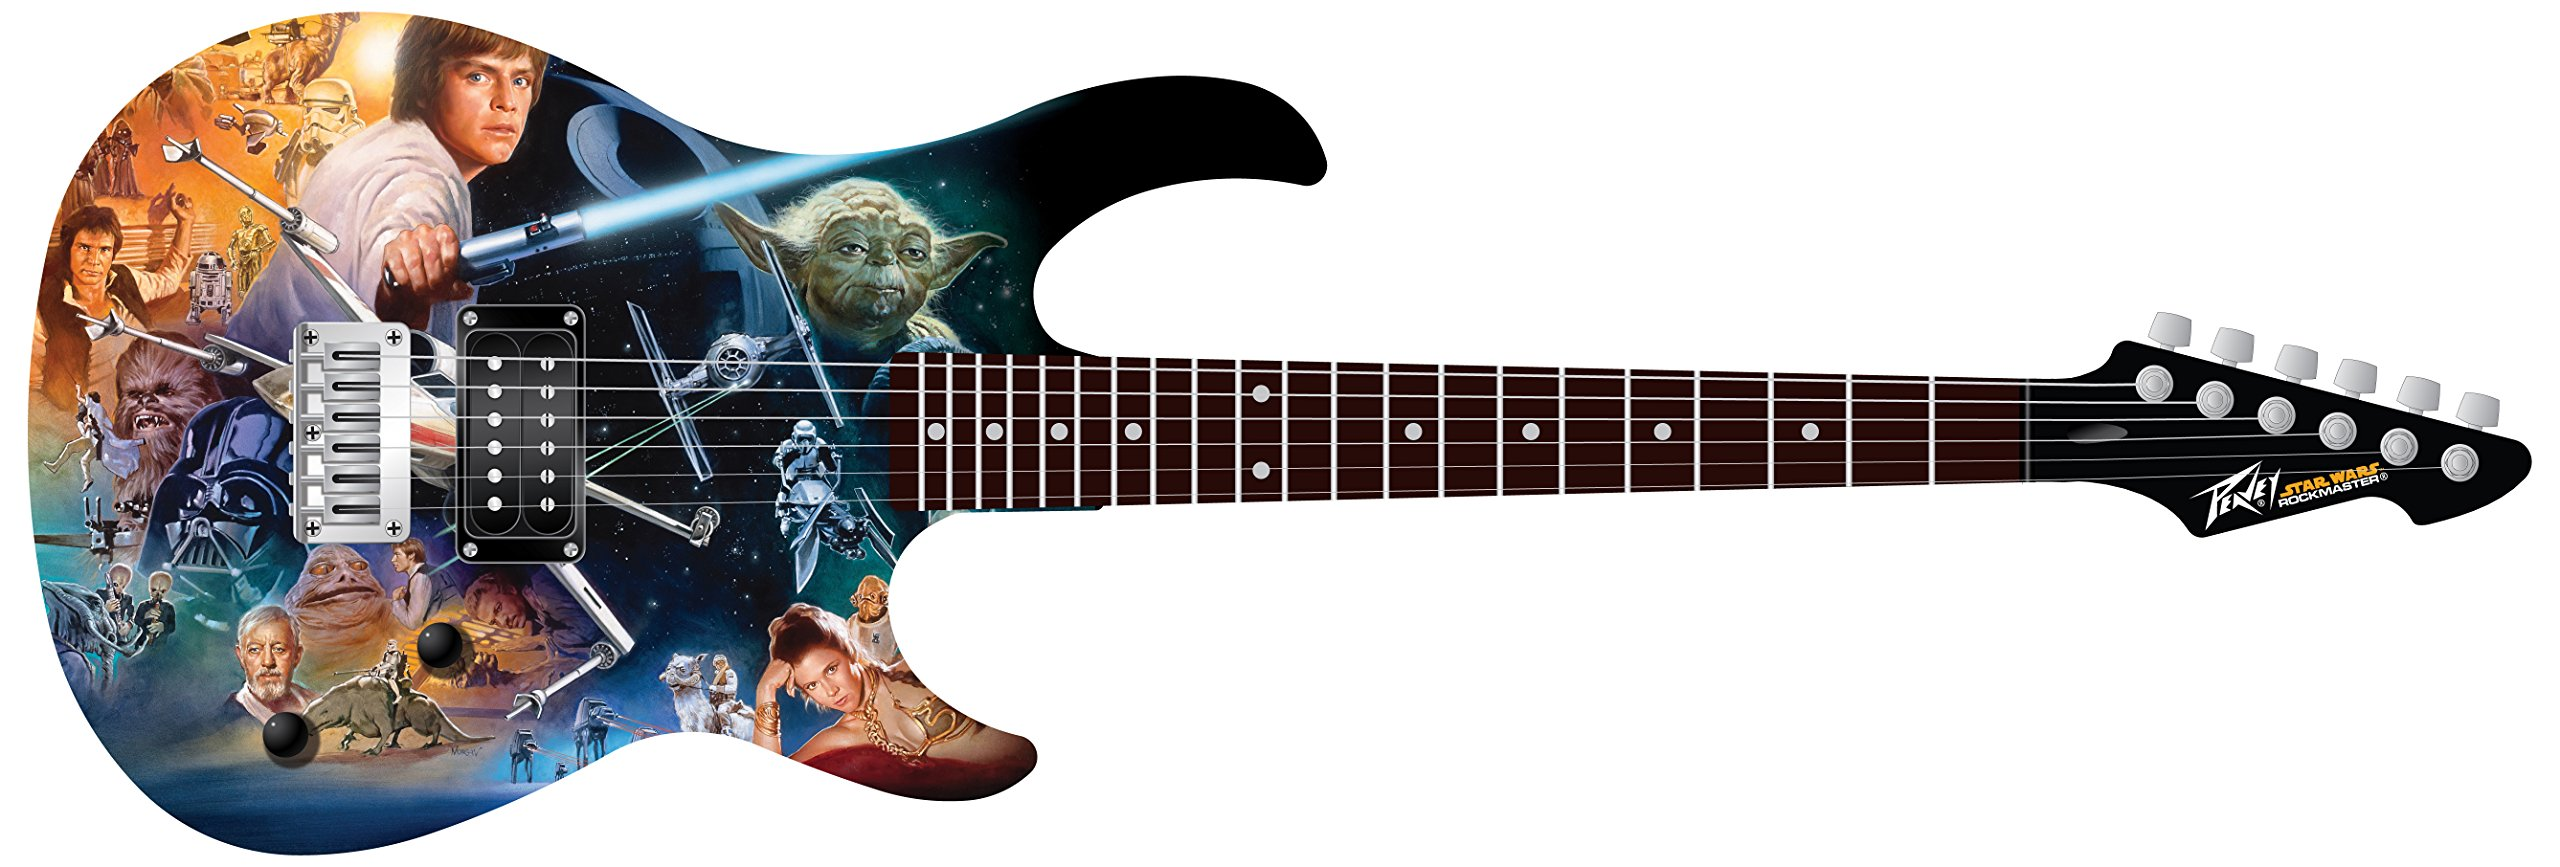 Cheap Peavey 03025300 STAR WARS Classic Collage Rockmaster Electric Guitar Pack Black Friday & Cyber Monday 2019